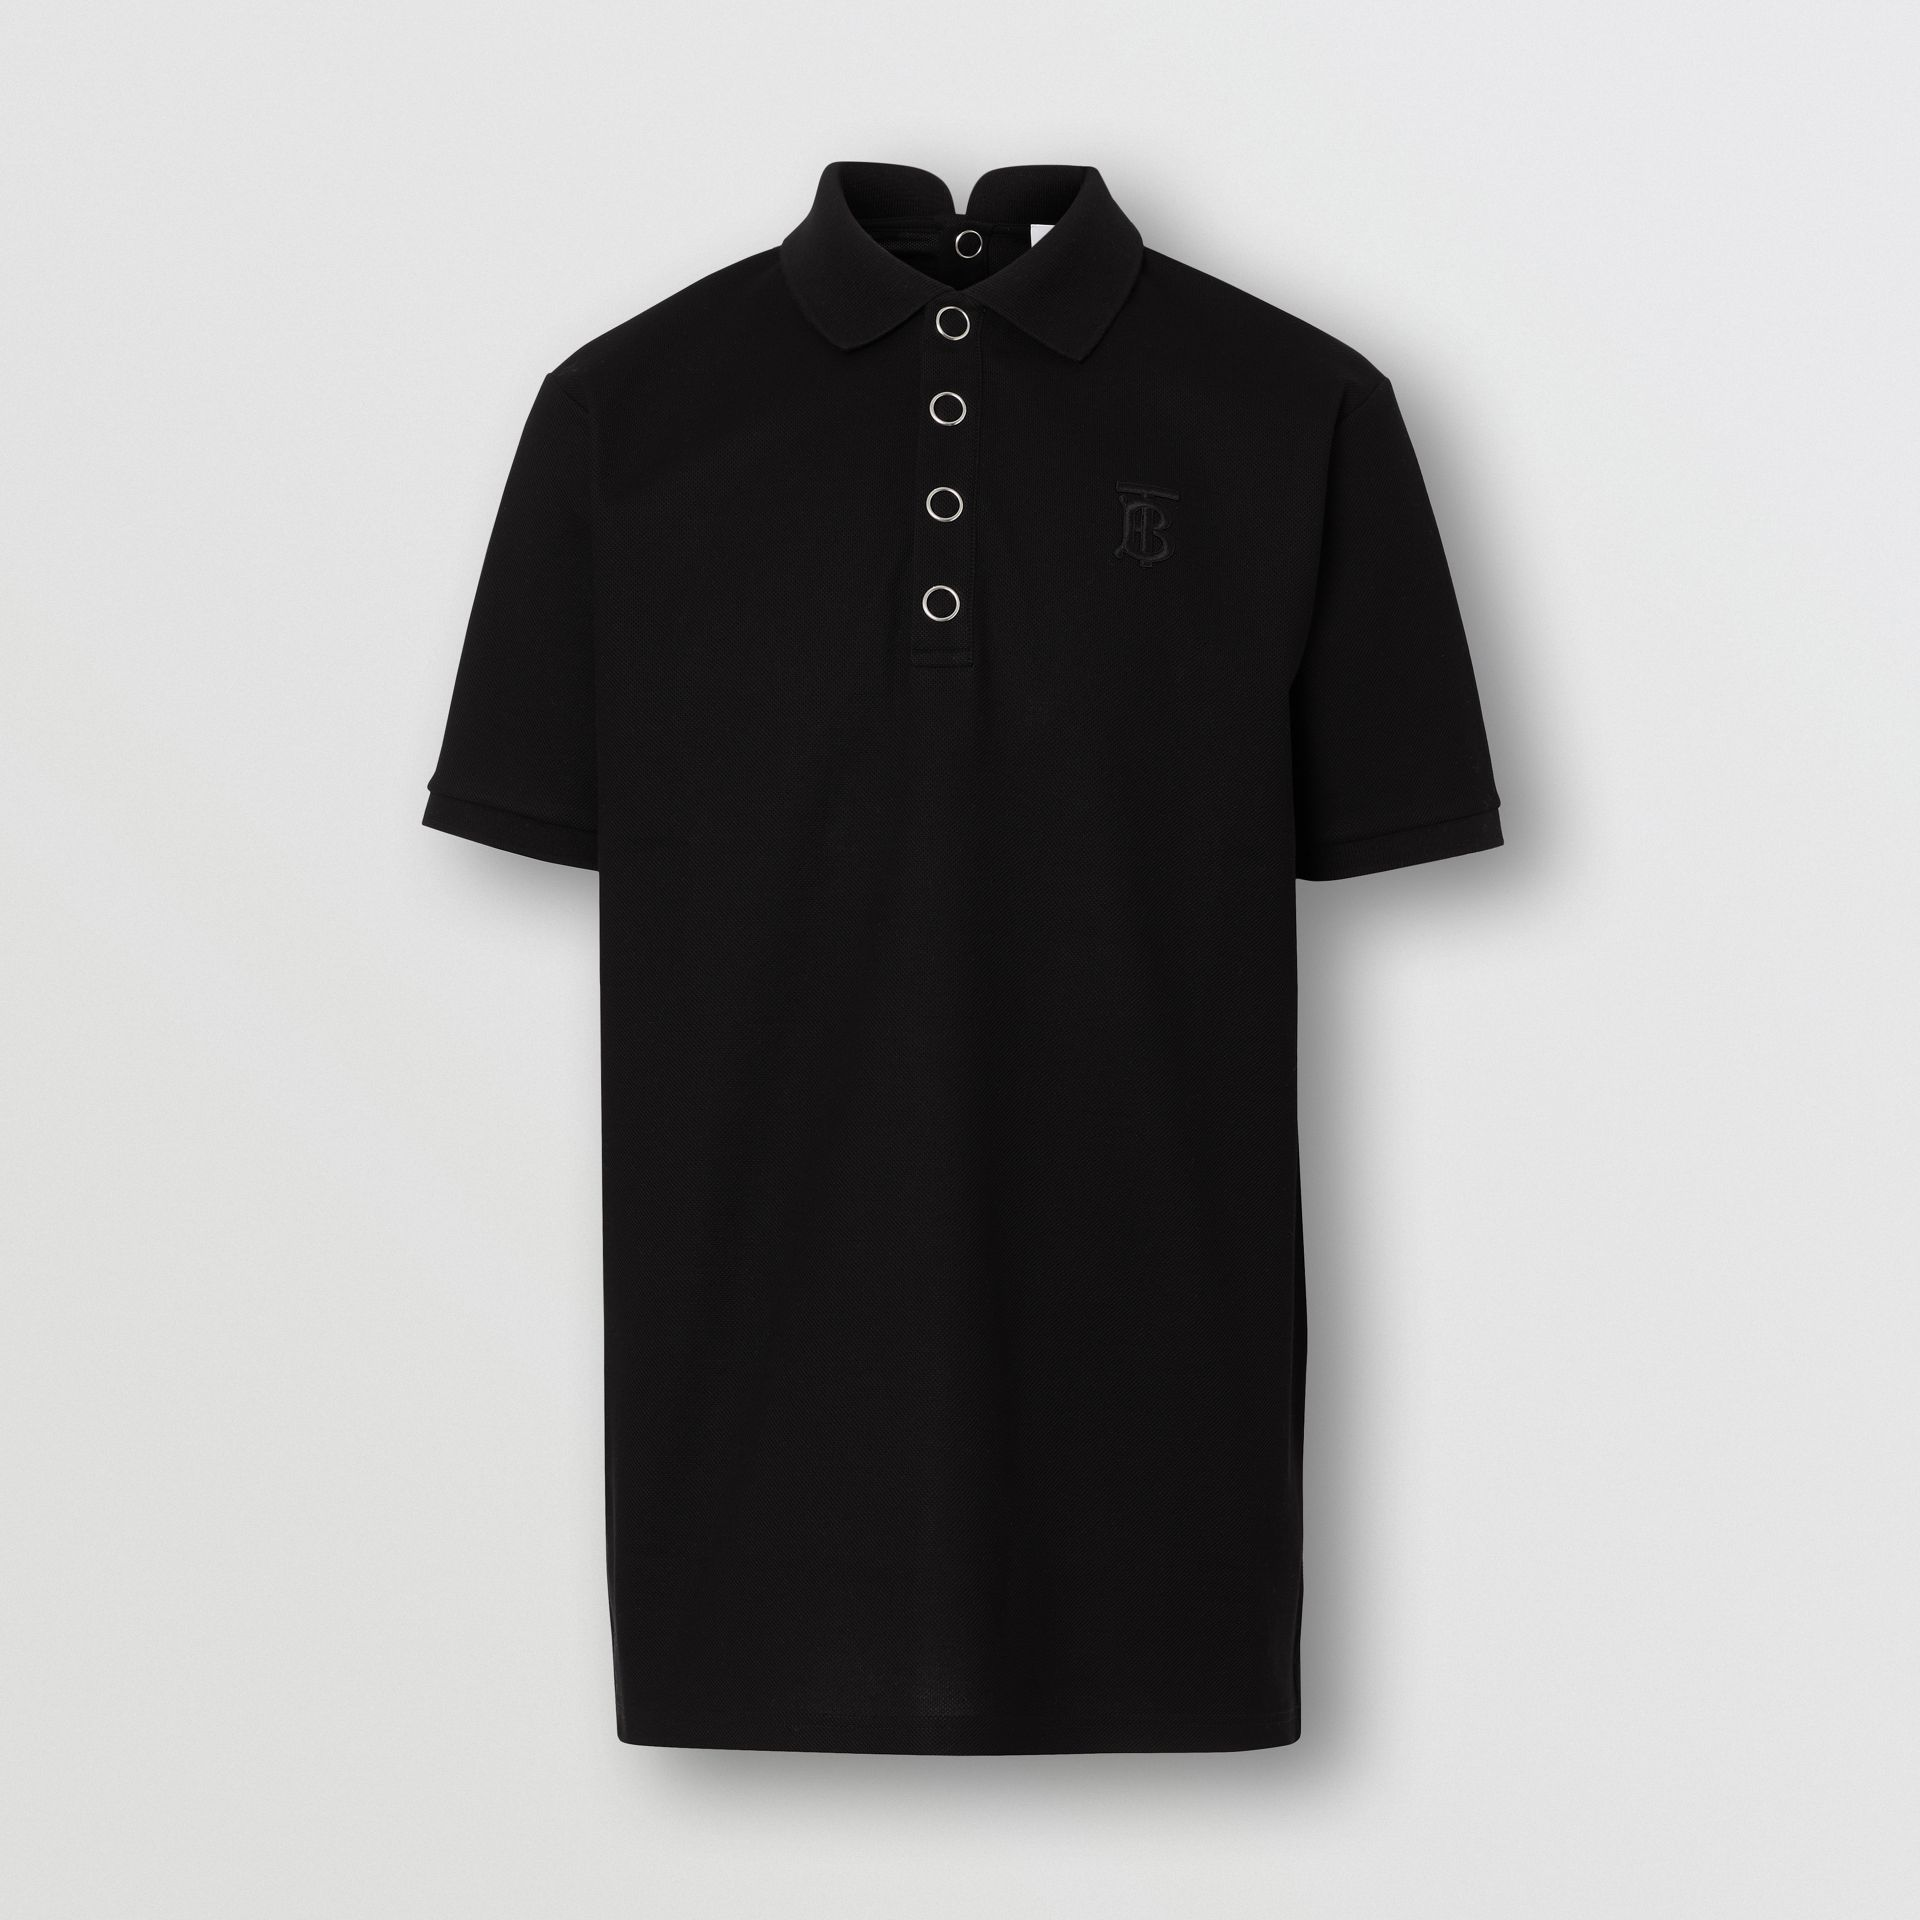 Monogram Motif Cotton Piqué Polo Shirt in Black | Burberry Singapore - gallery image 3